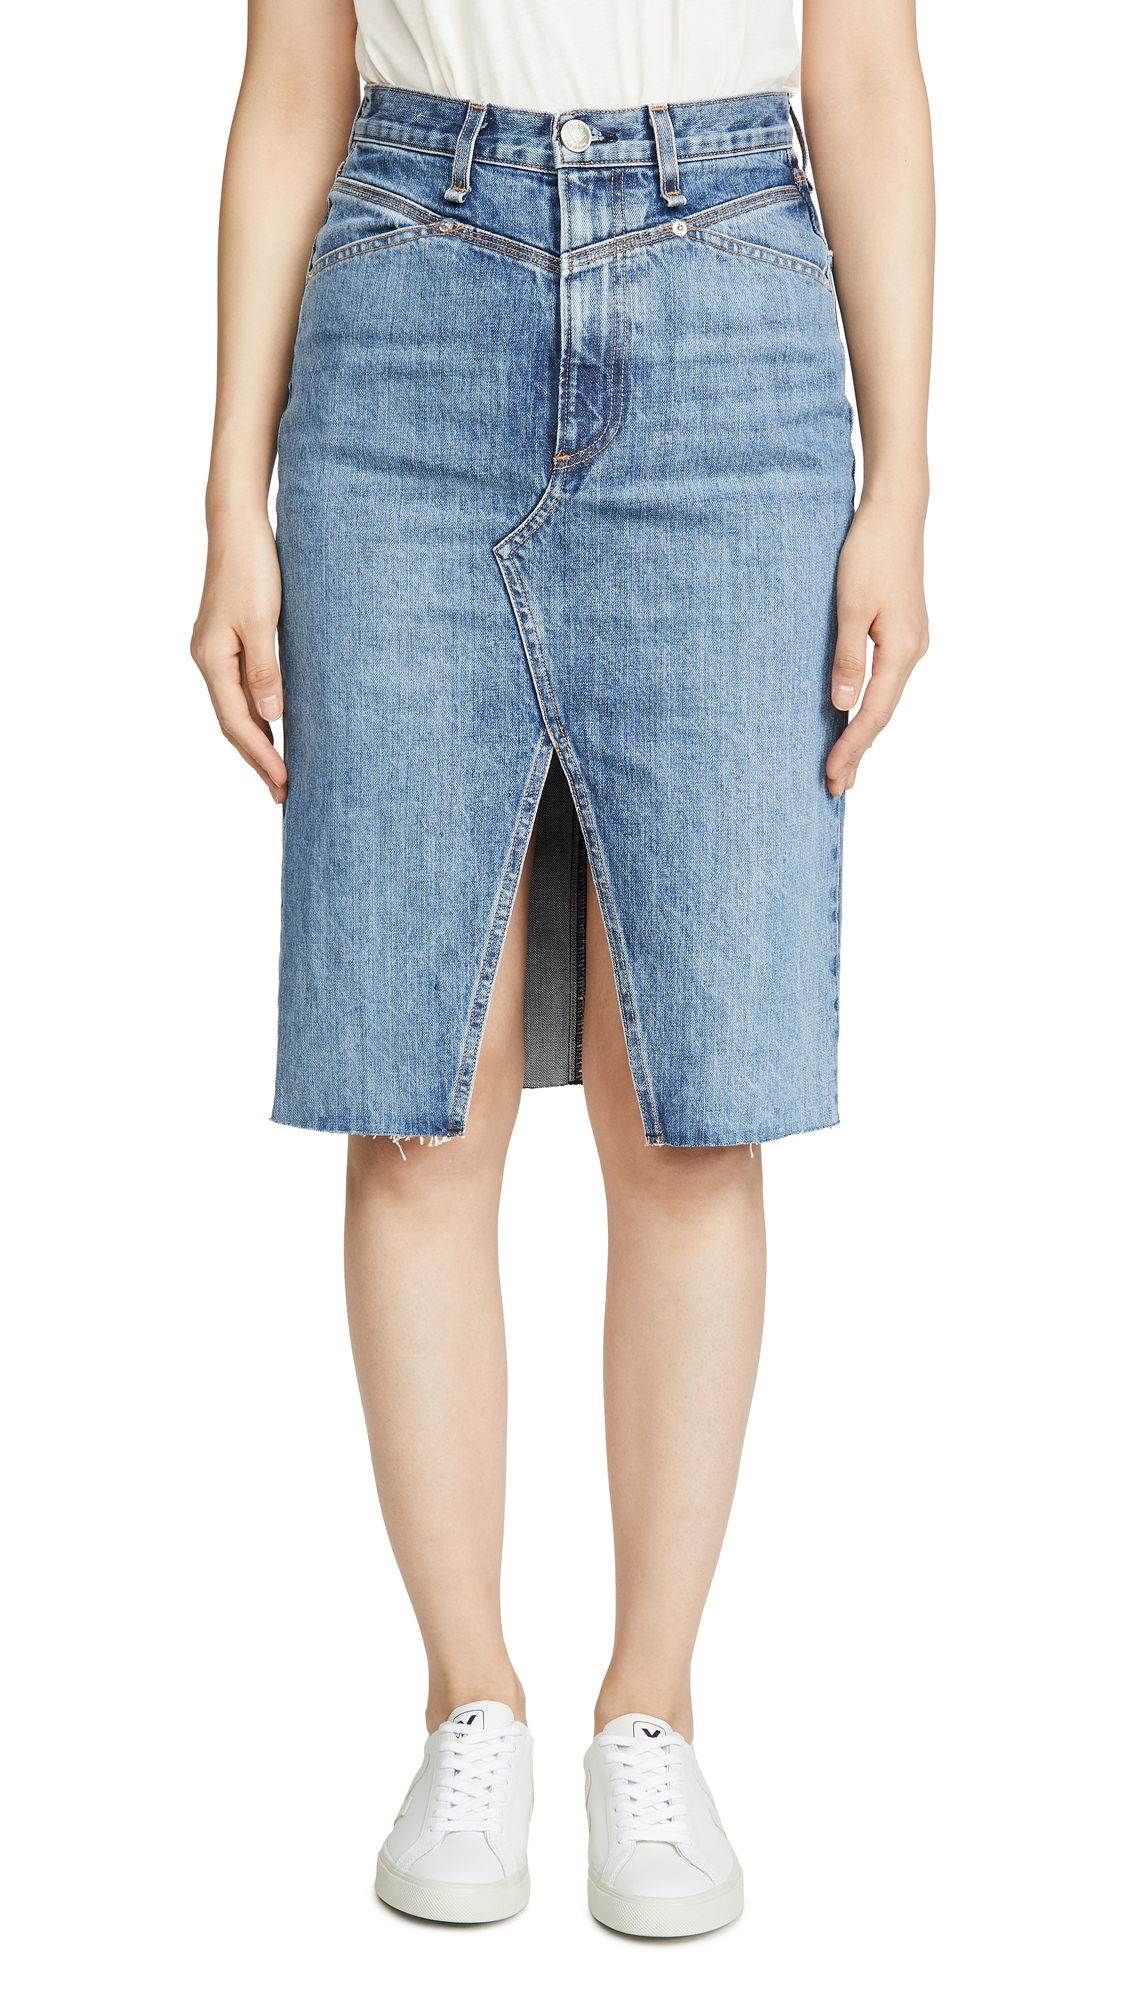 Buy Rag & Bone/JEAN online - photo of Rag & Bone/JEAN Super High-Rise Pencil Skirt